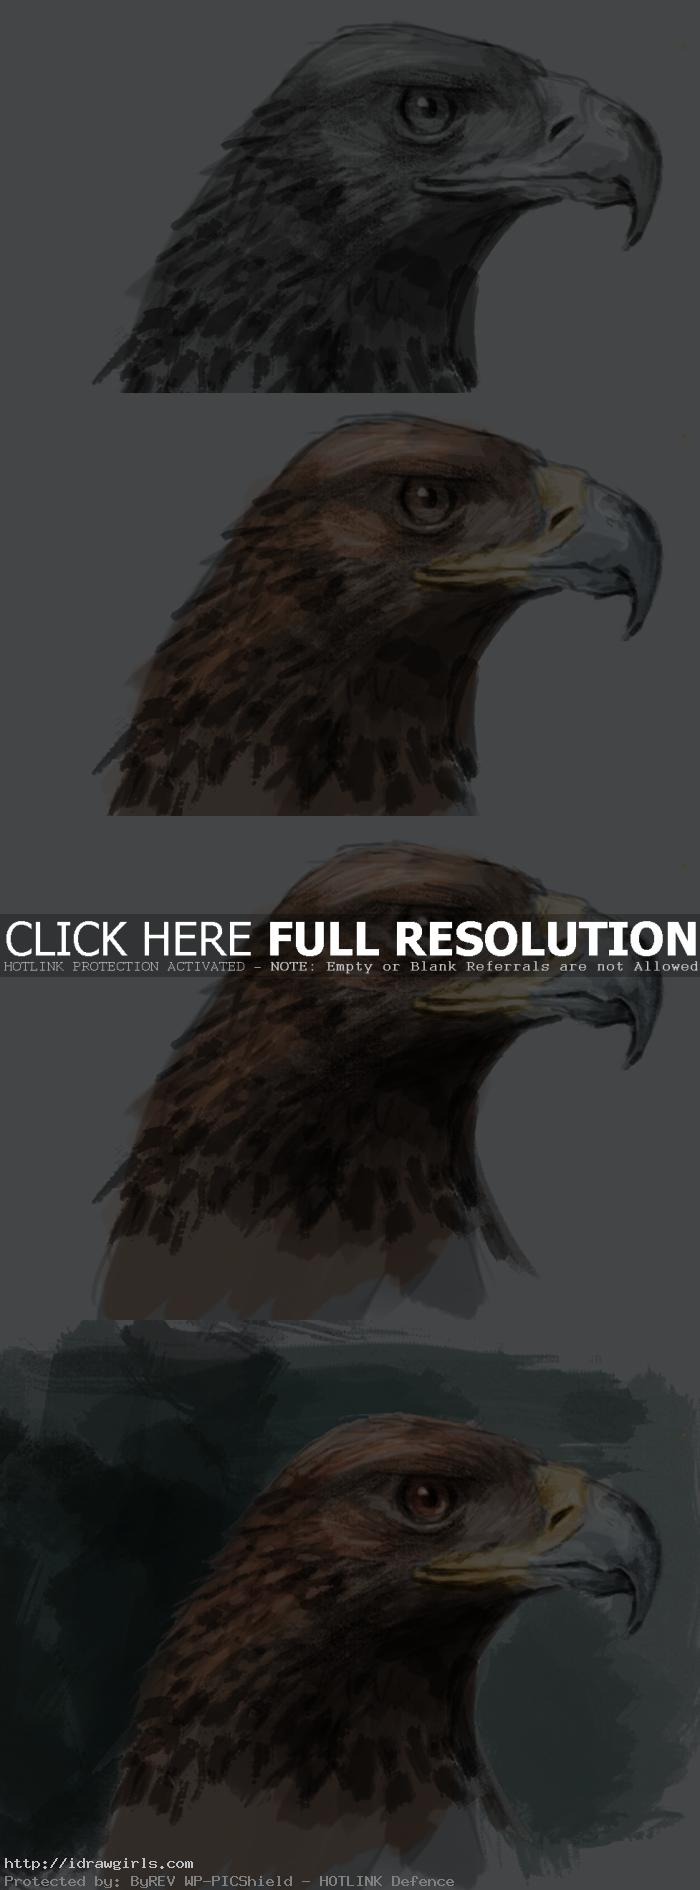 painting eagle tutorial Painting golden eagle tutorial